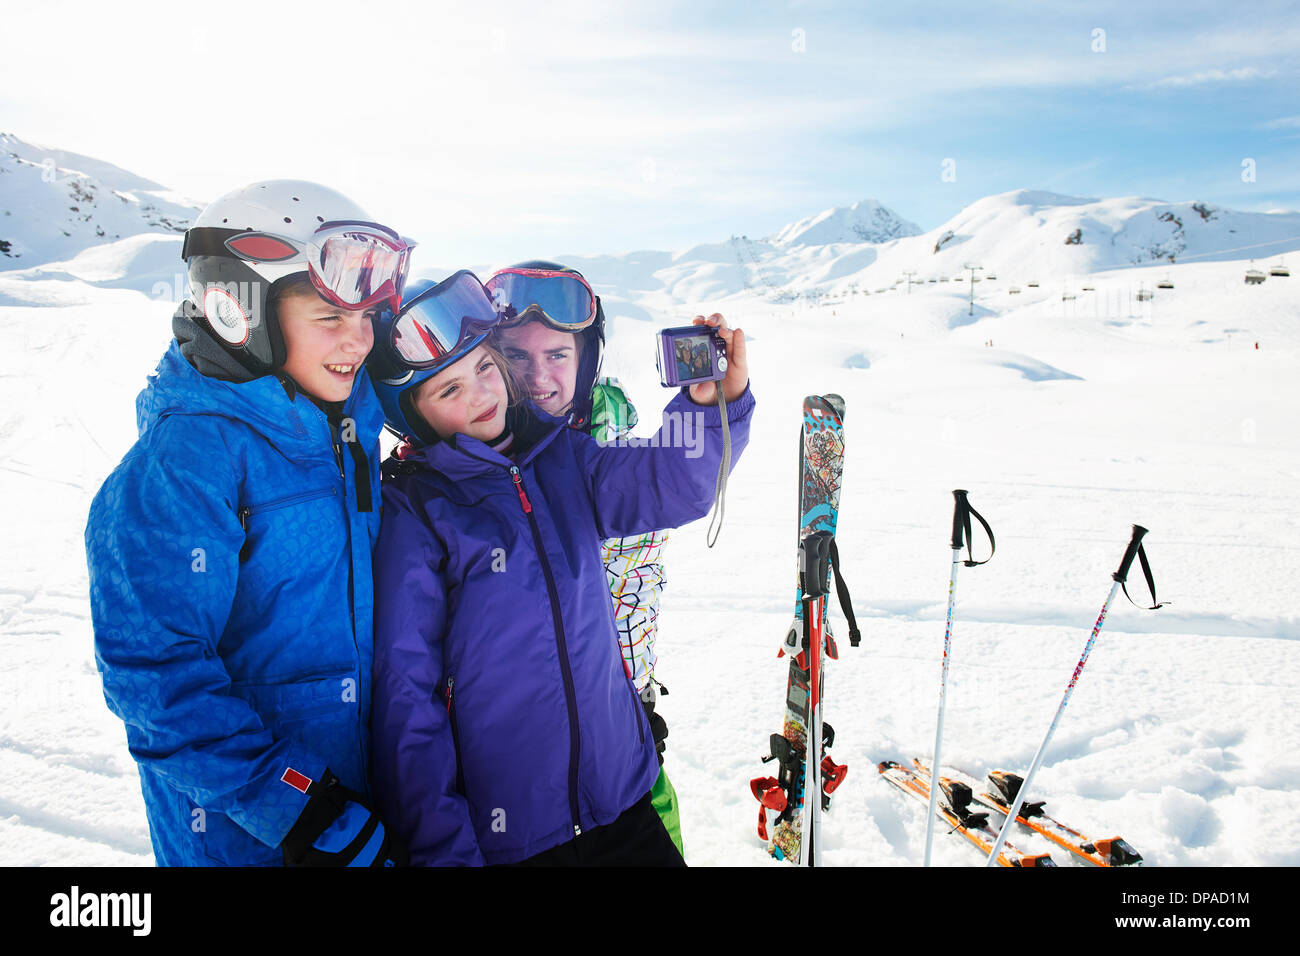 Brother and sisters taking self portrait, Les Arcs, Haute-Savoie, France - Stock Image